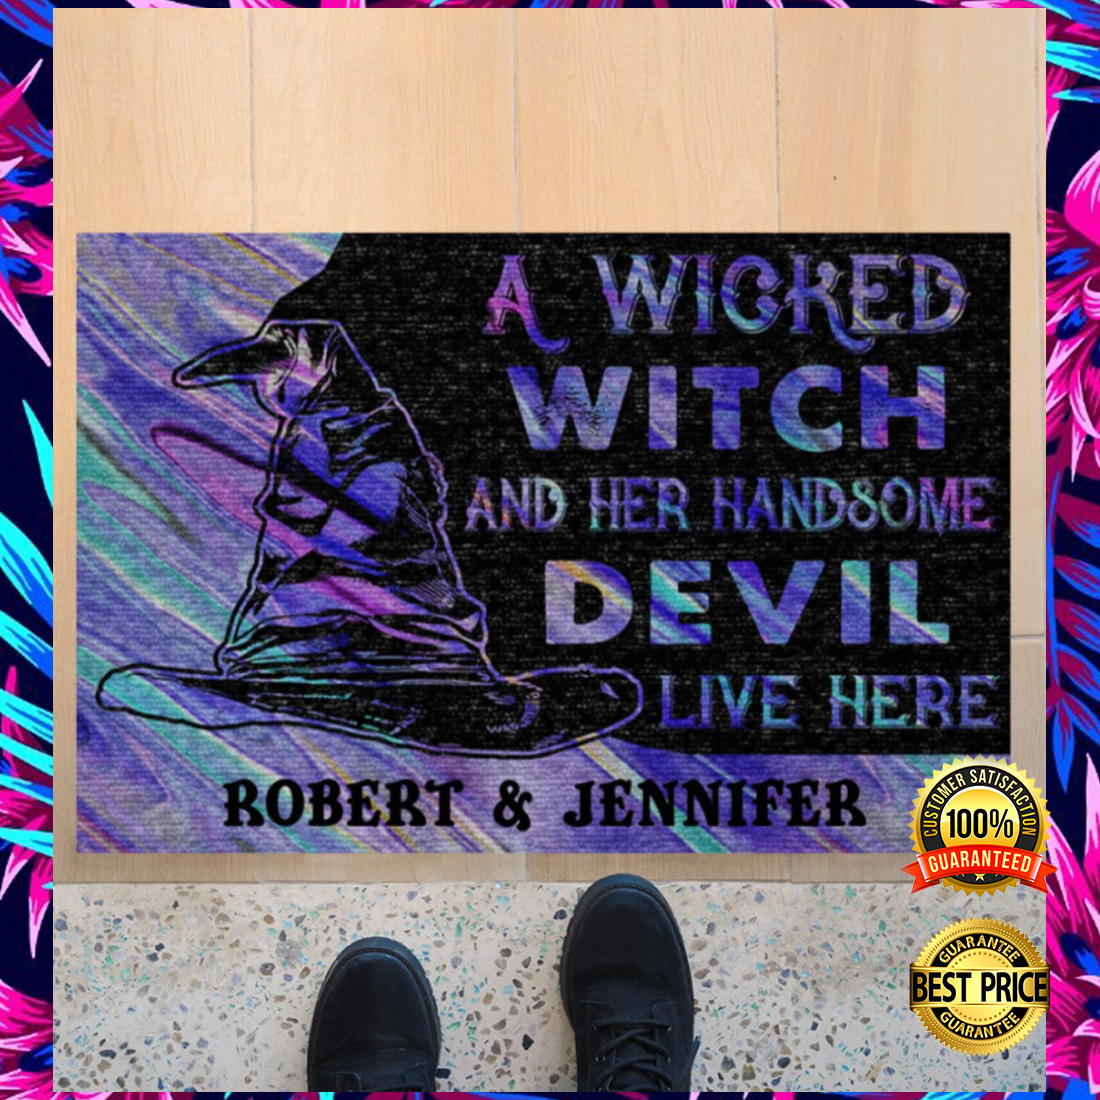 Personalized a wicked witch and her handsome devil live here doormat 4